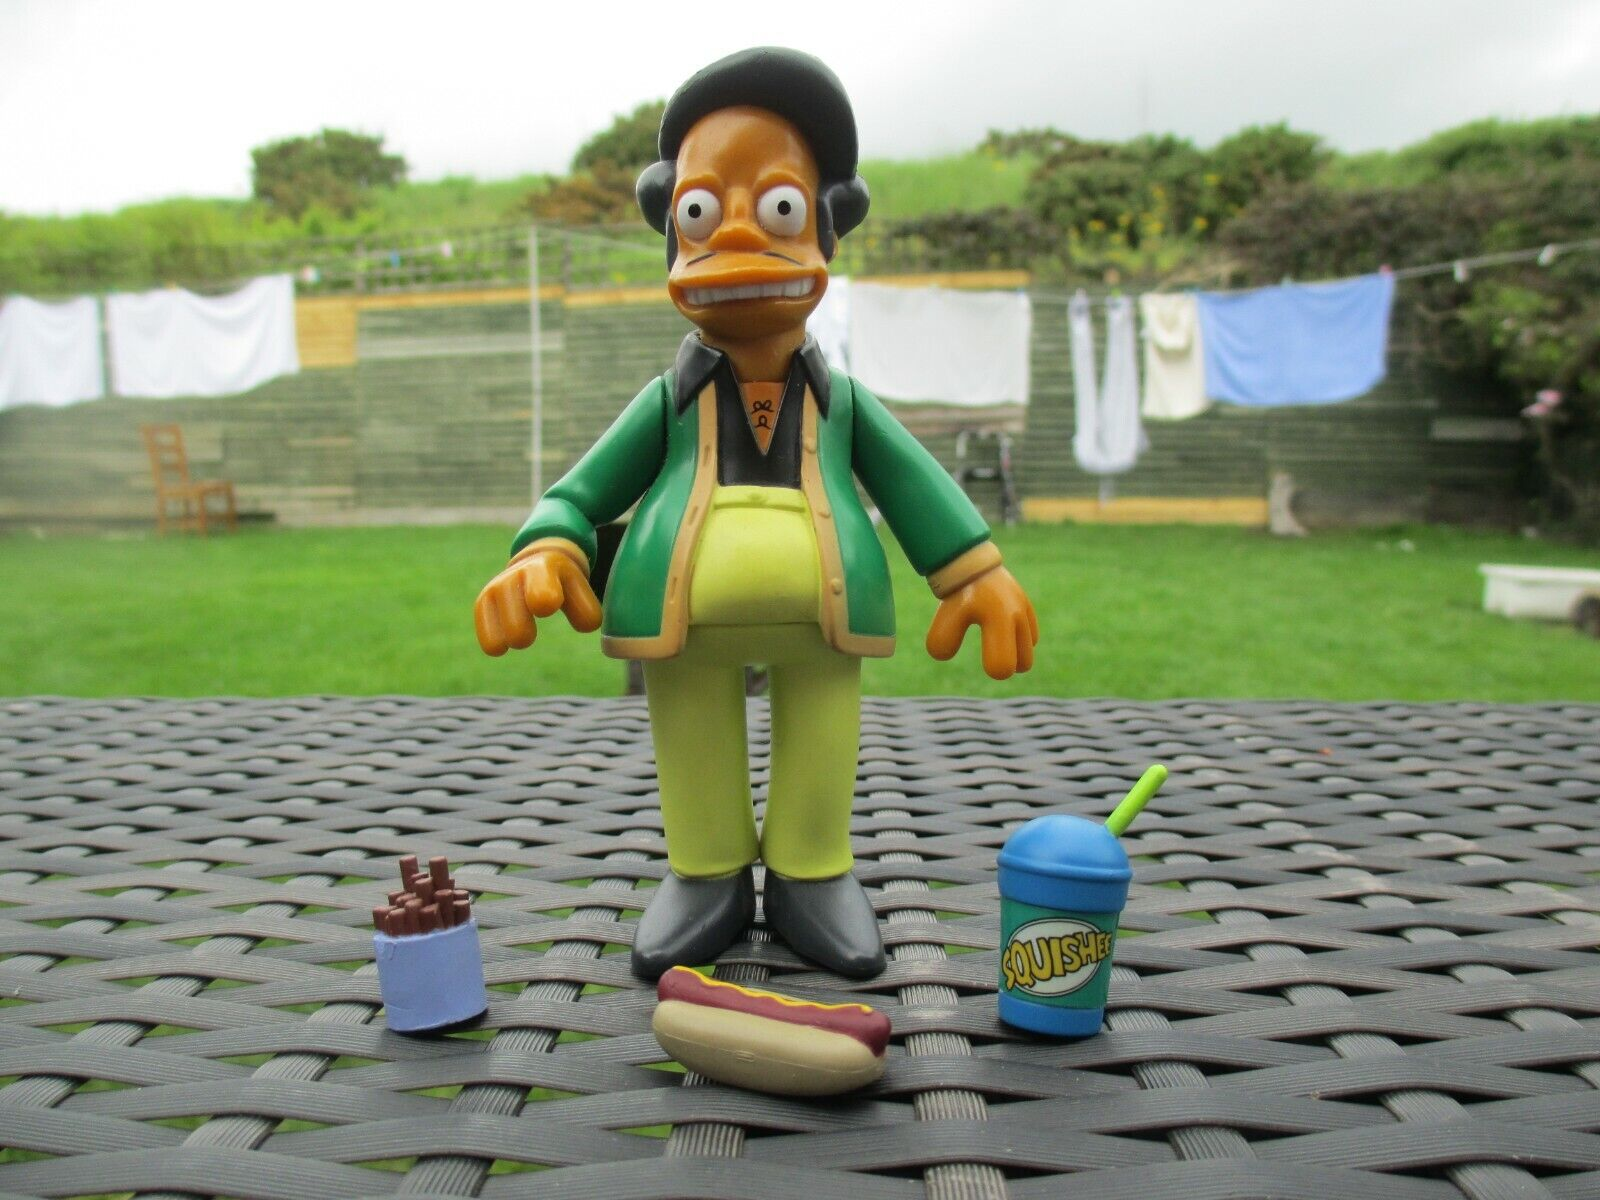 RARE 2001 Playmates WOS The Simpsons - APU - Series 1 COMPLETE Action Figure Toy